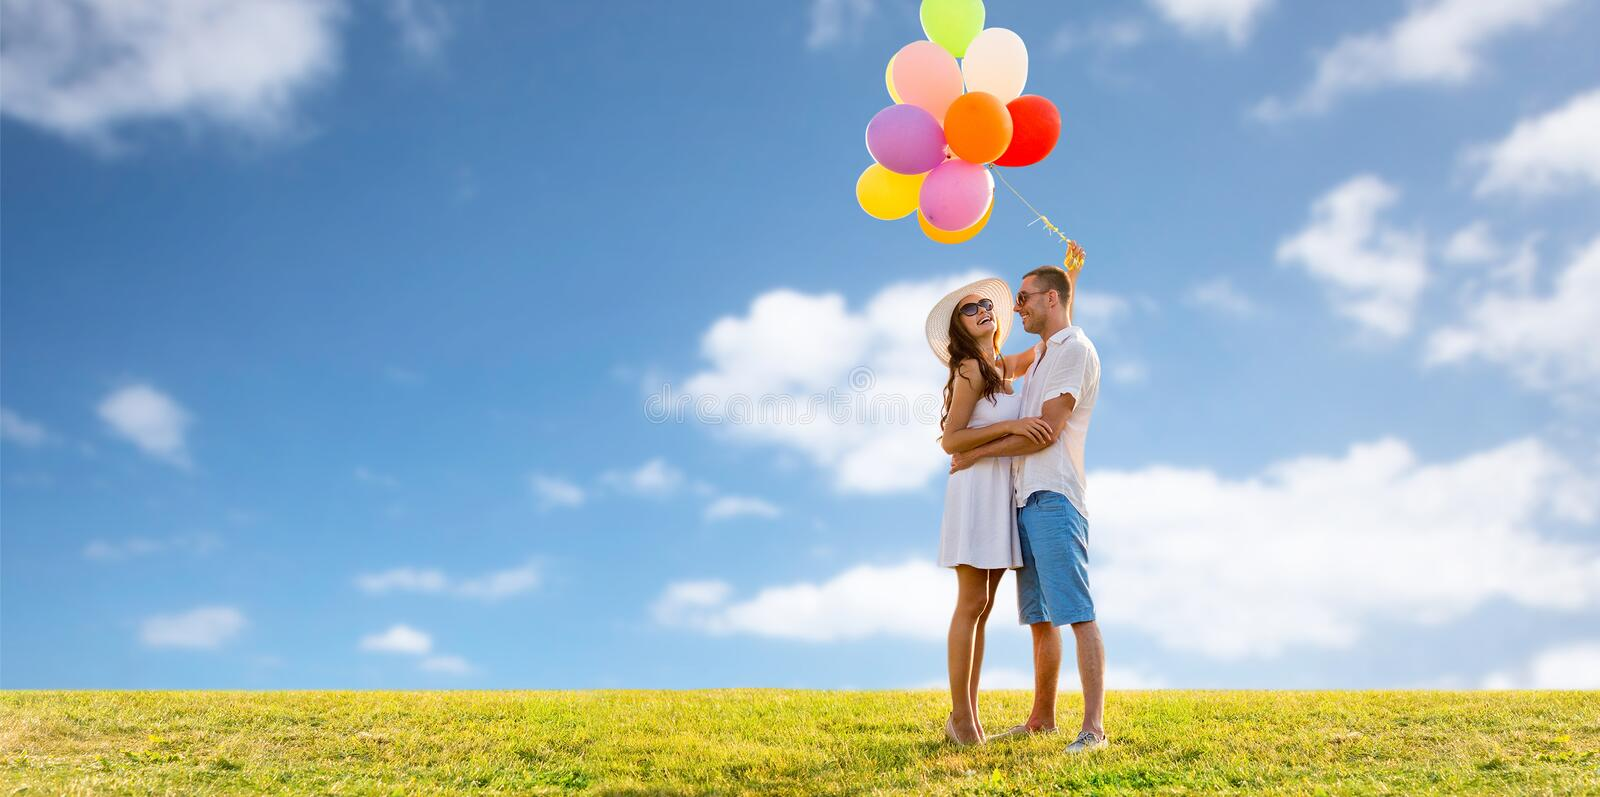 Smiling couple with balloons over sky and grass royalty free stock image